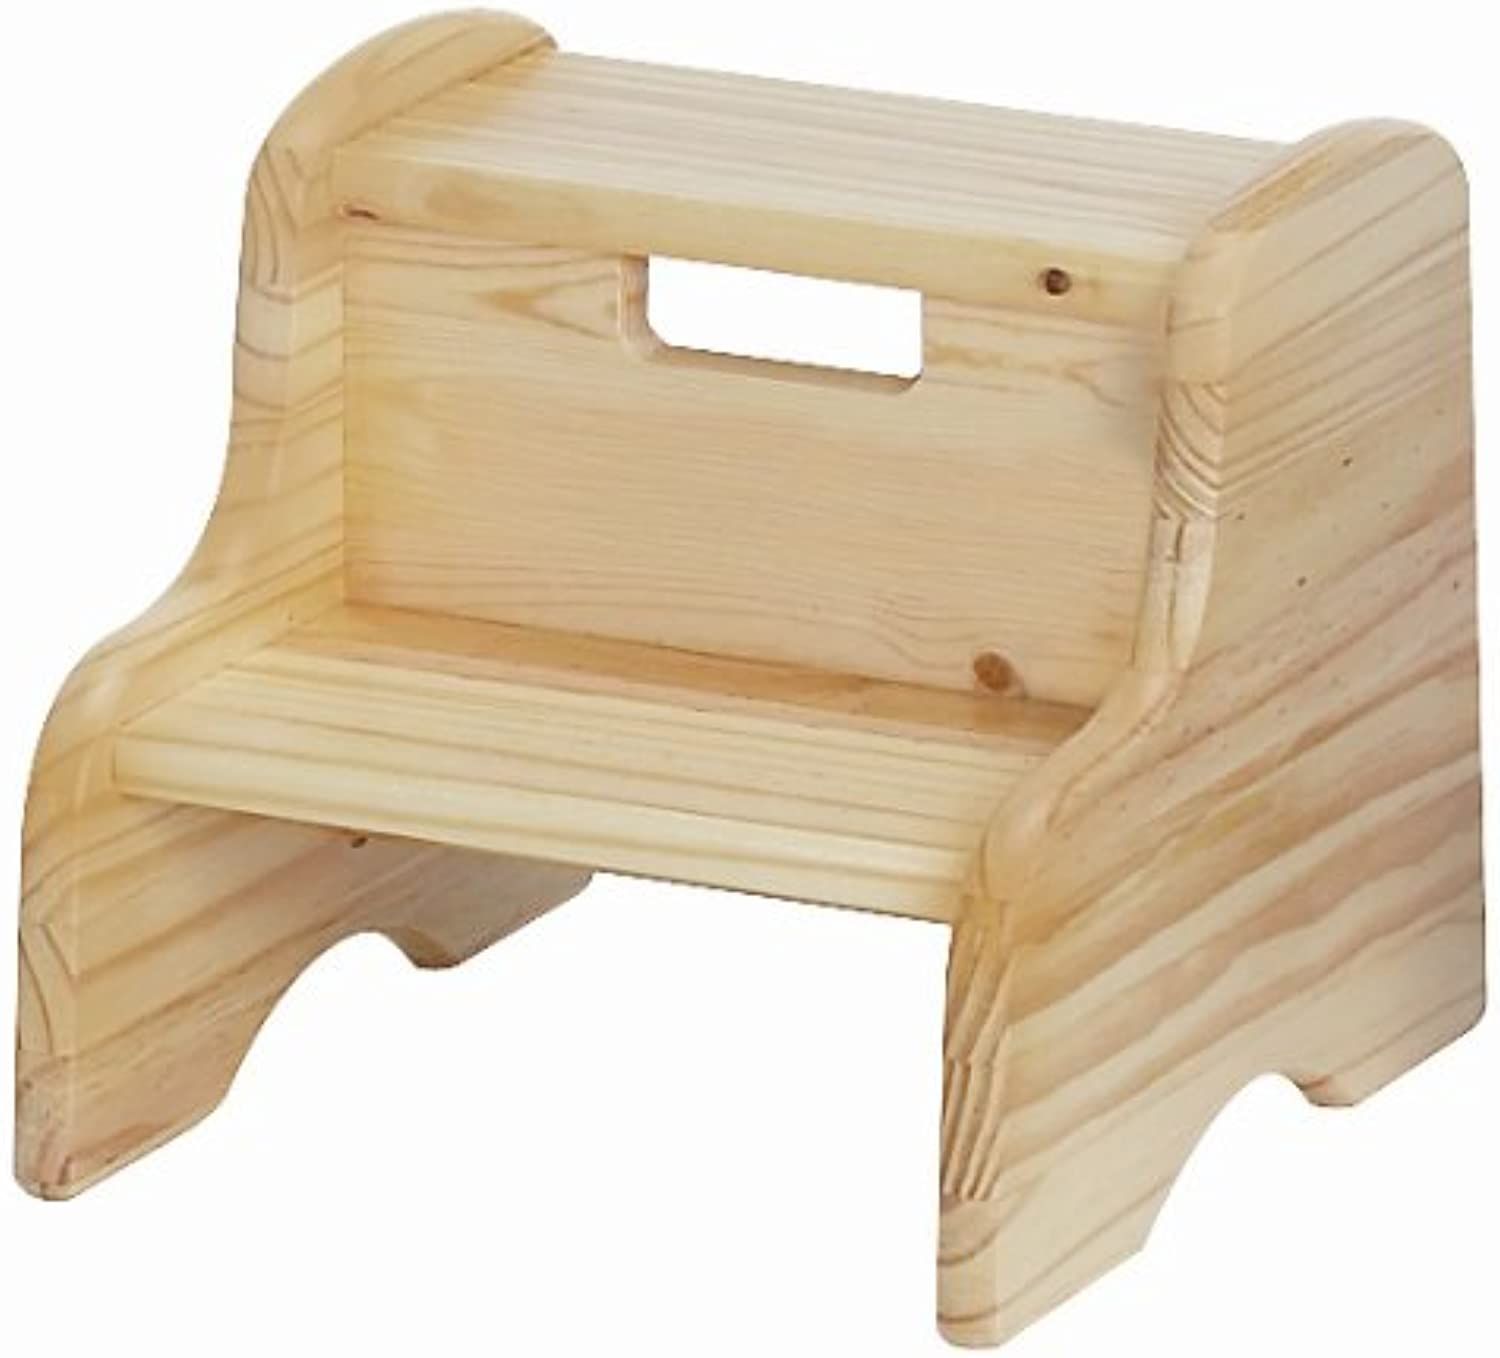 Little colorado 105WDUNF Unfinished Wooden Step Stool